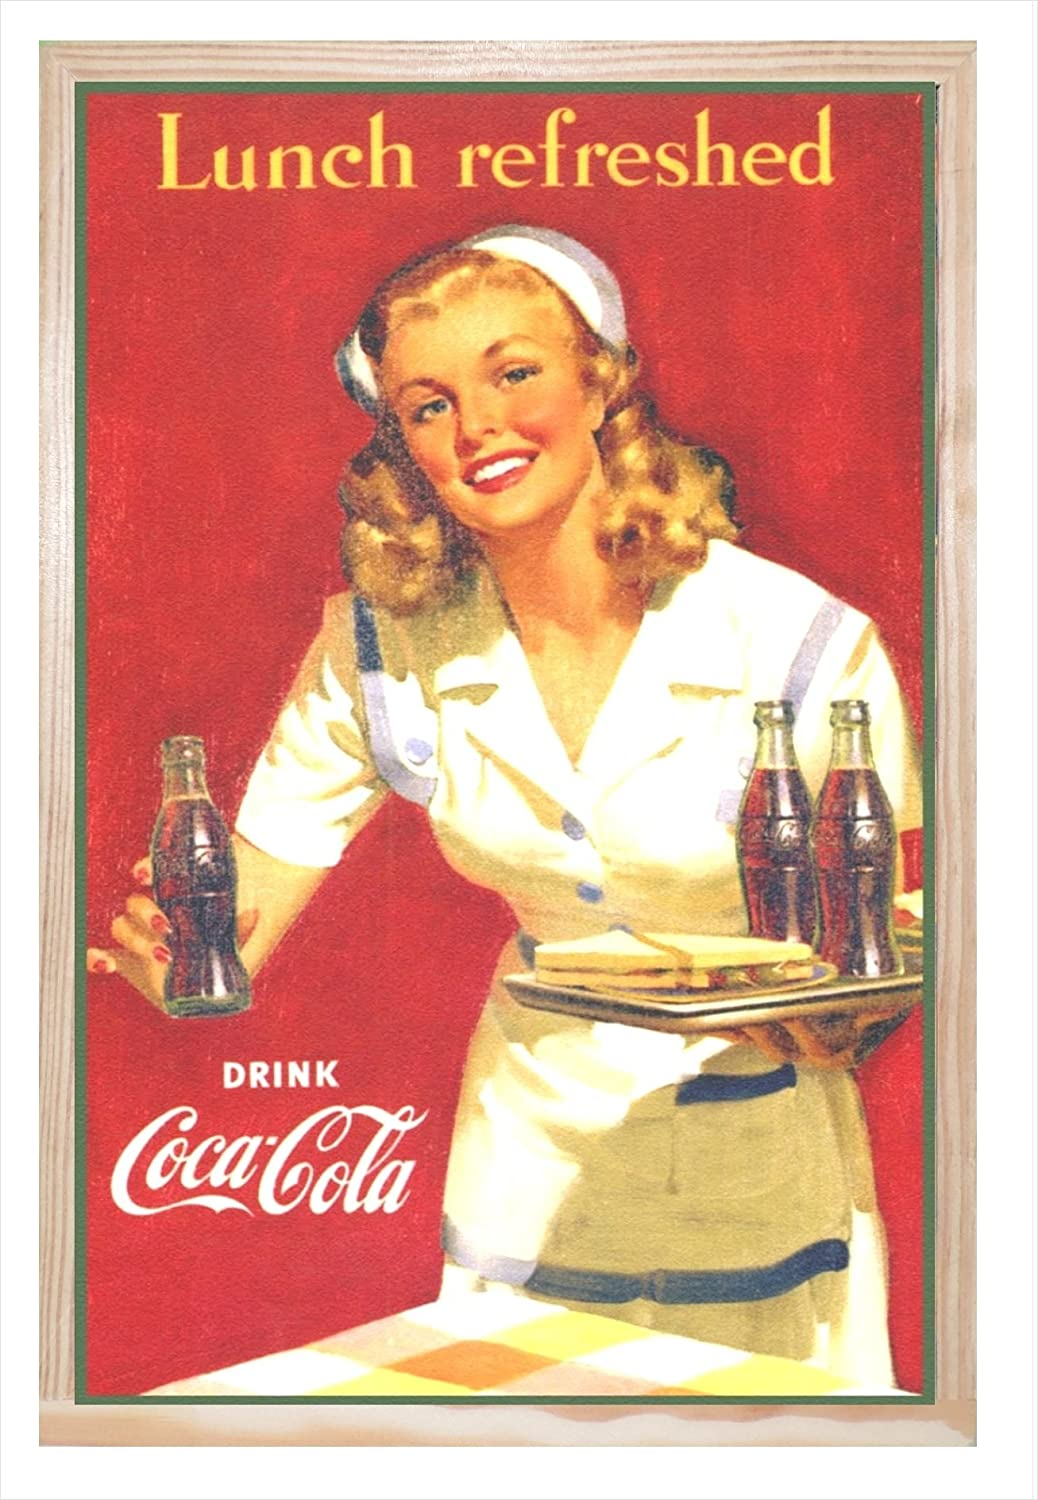 Ccretroiluminados Coca-Cola Lunch Refreshed Cartel Vintage ...